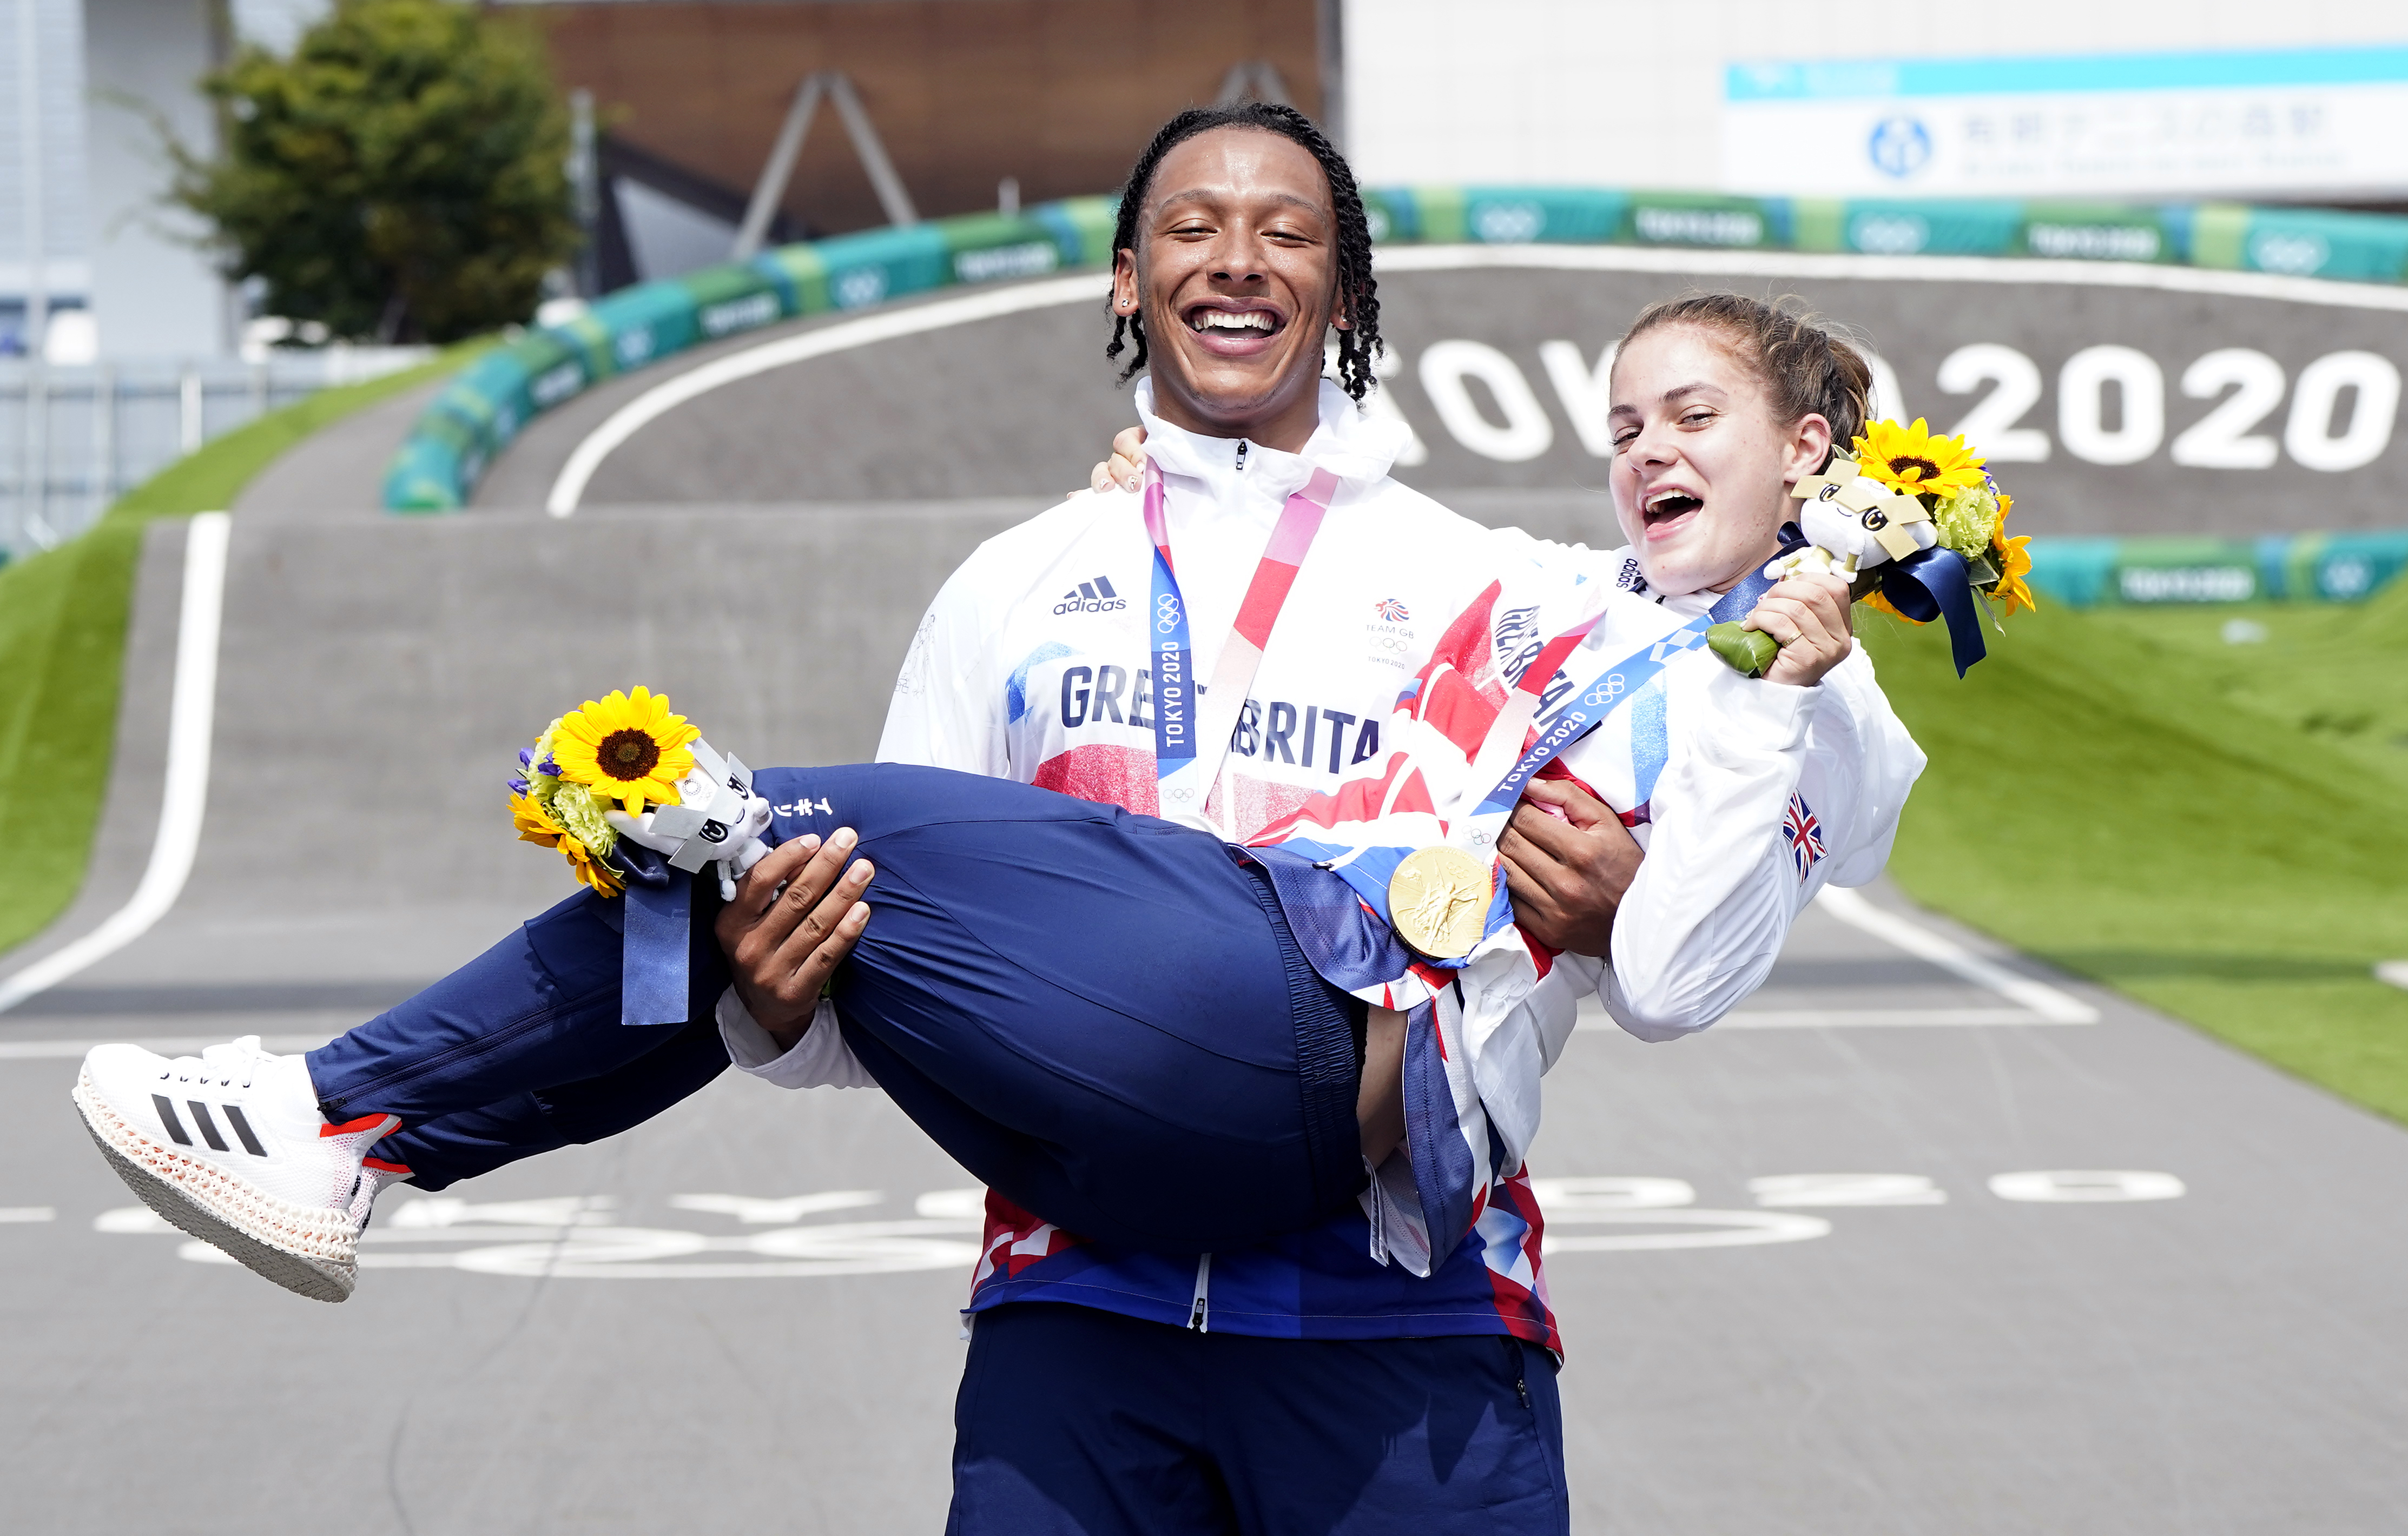 Bethany Shriever and Kye Whyte celebrate their medals